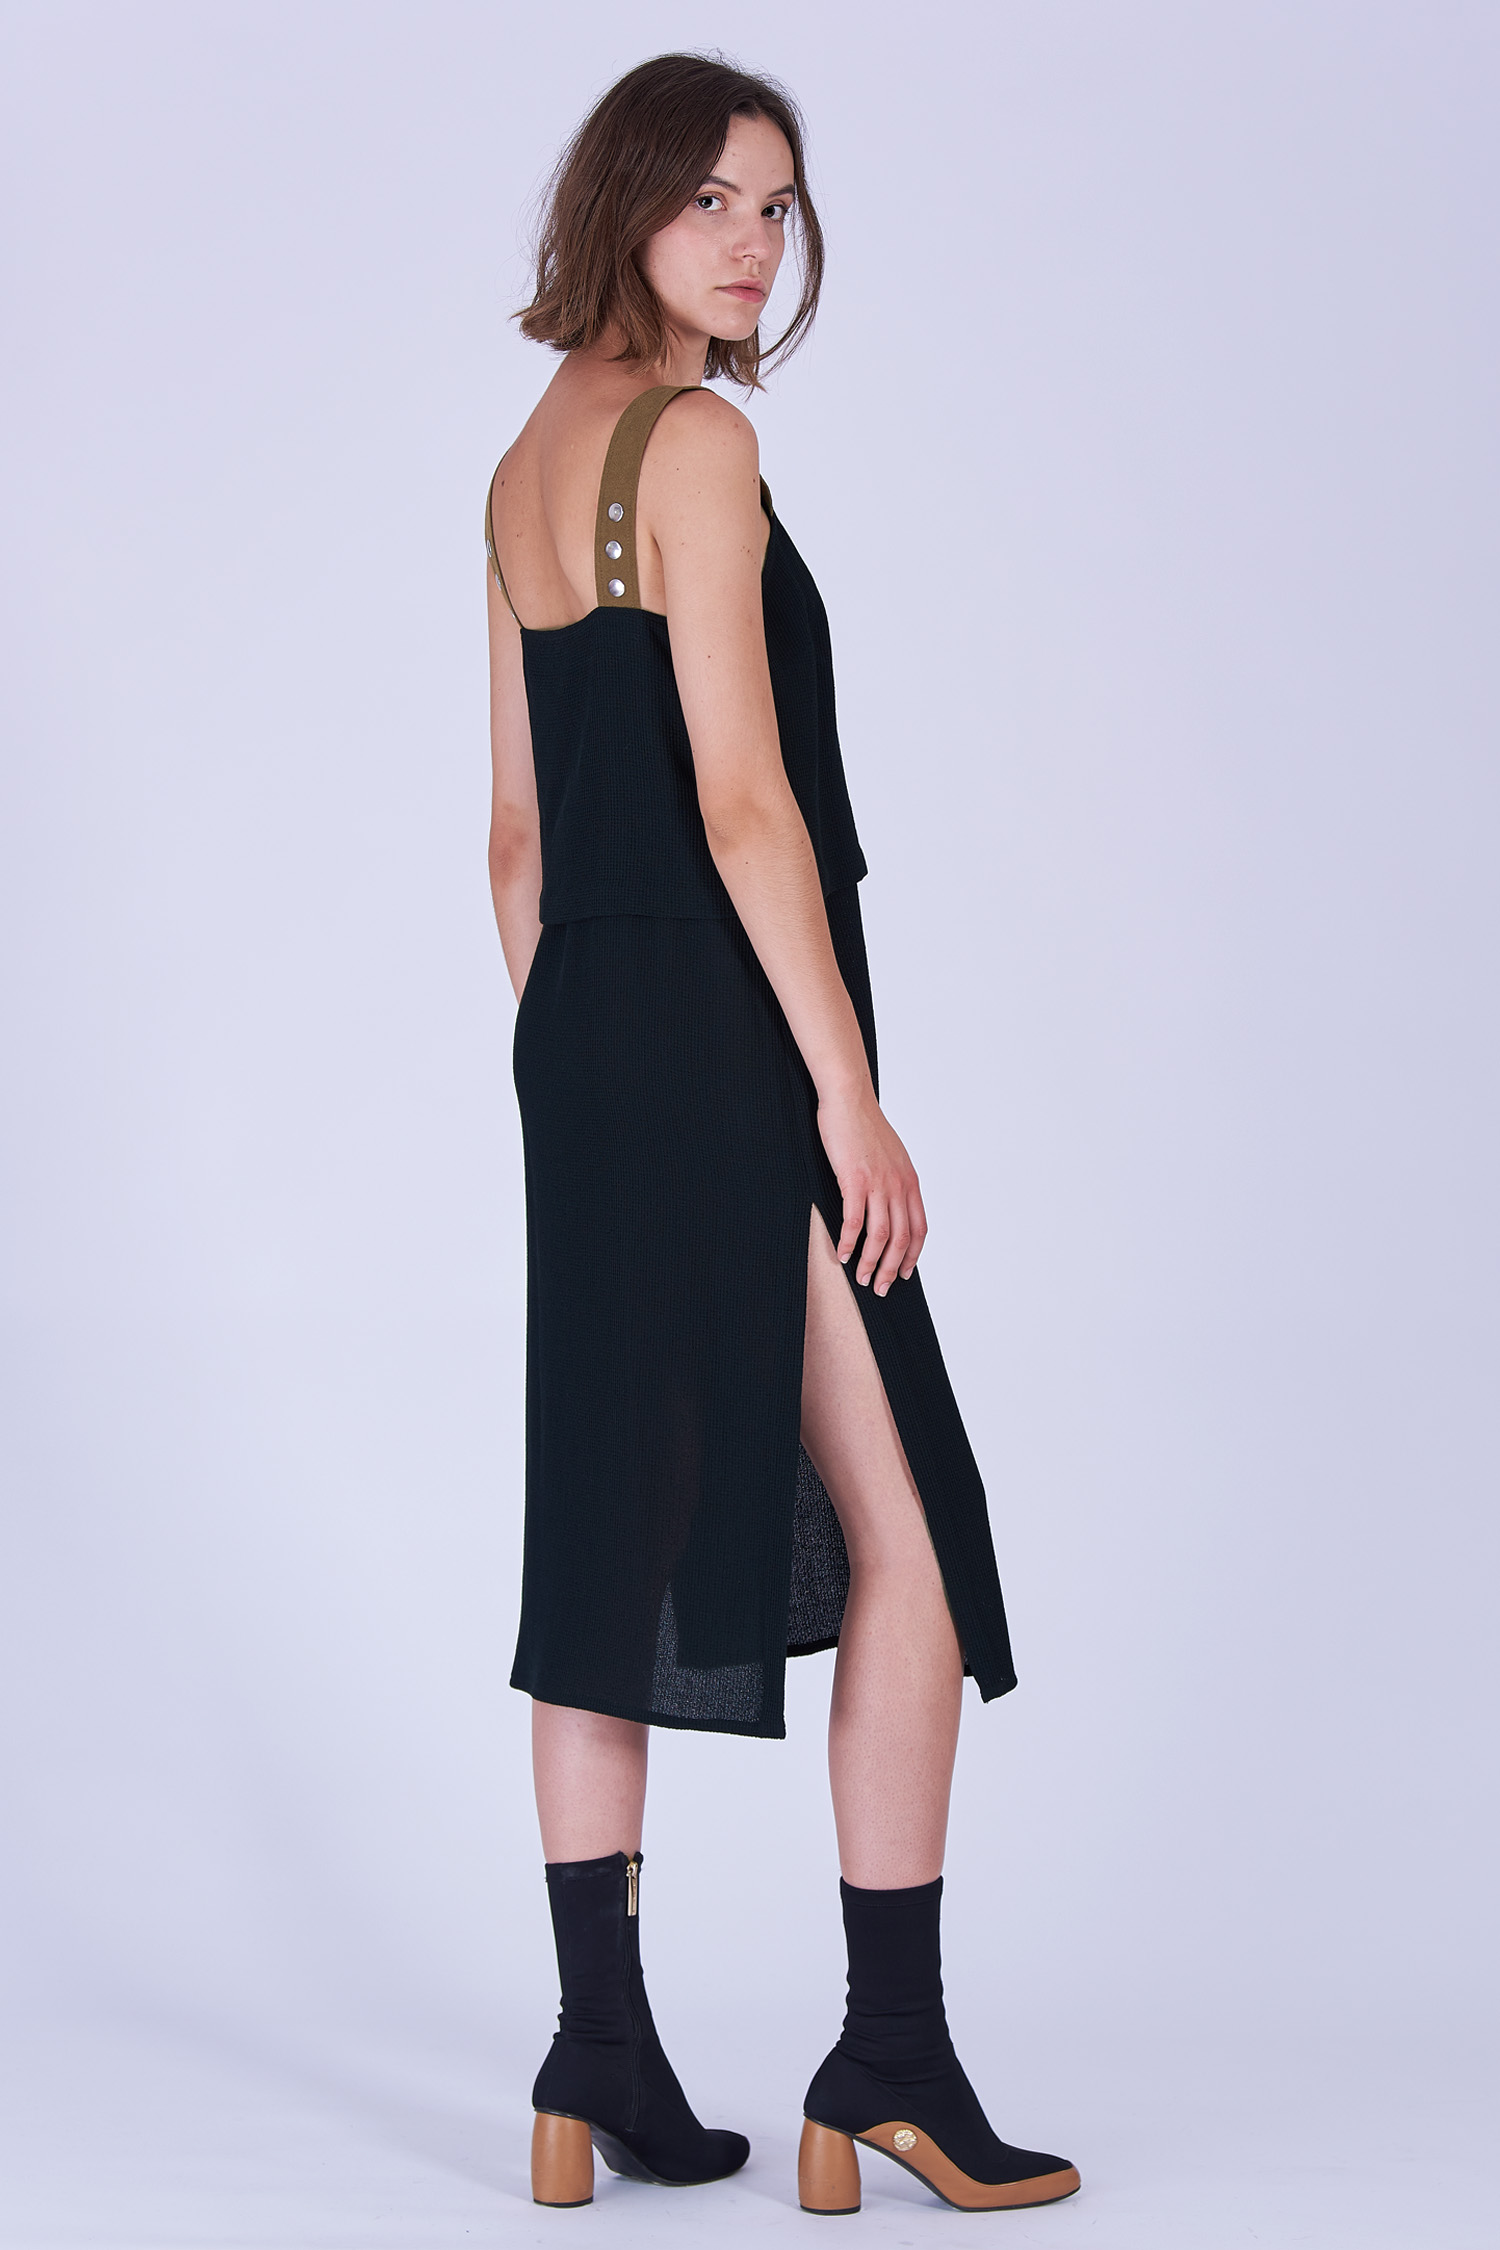 Acephala Fw19 20 Black Strap Midi Dress Czarna Sukienka Szelki Side 1